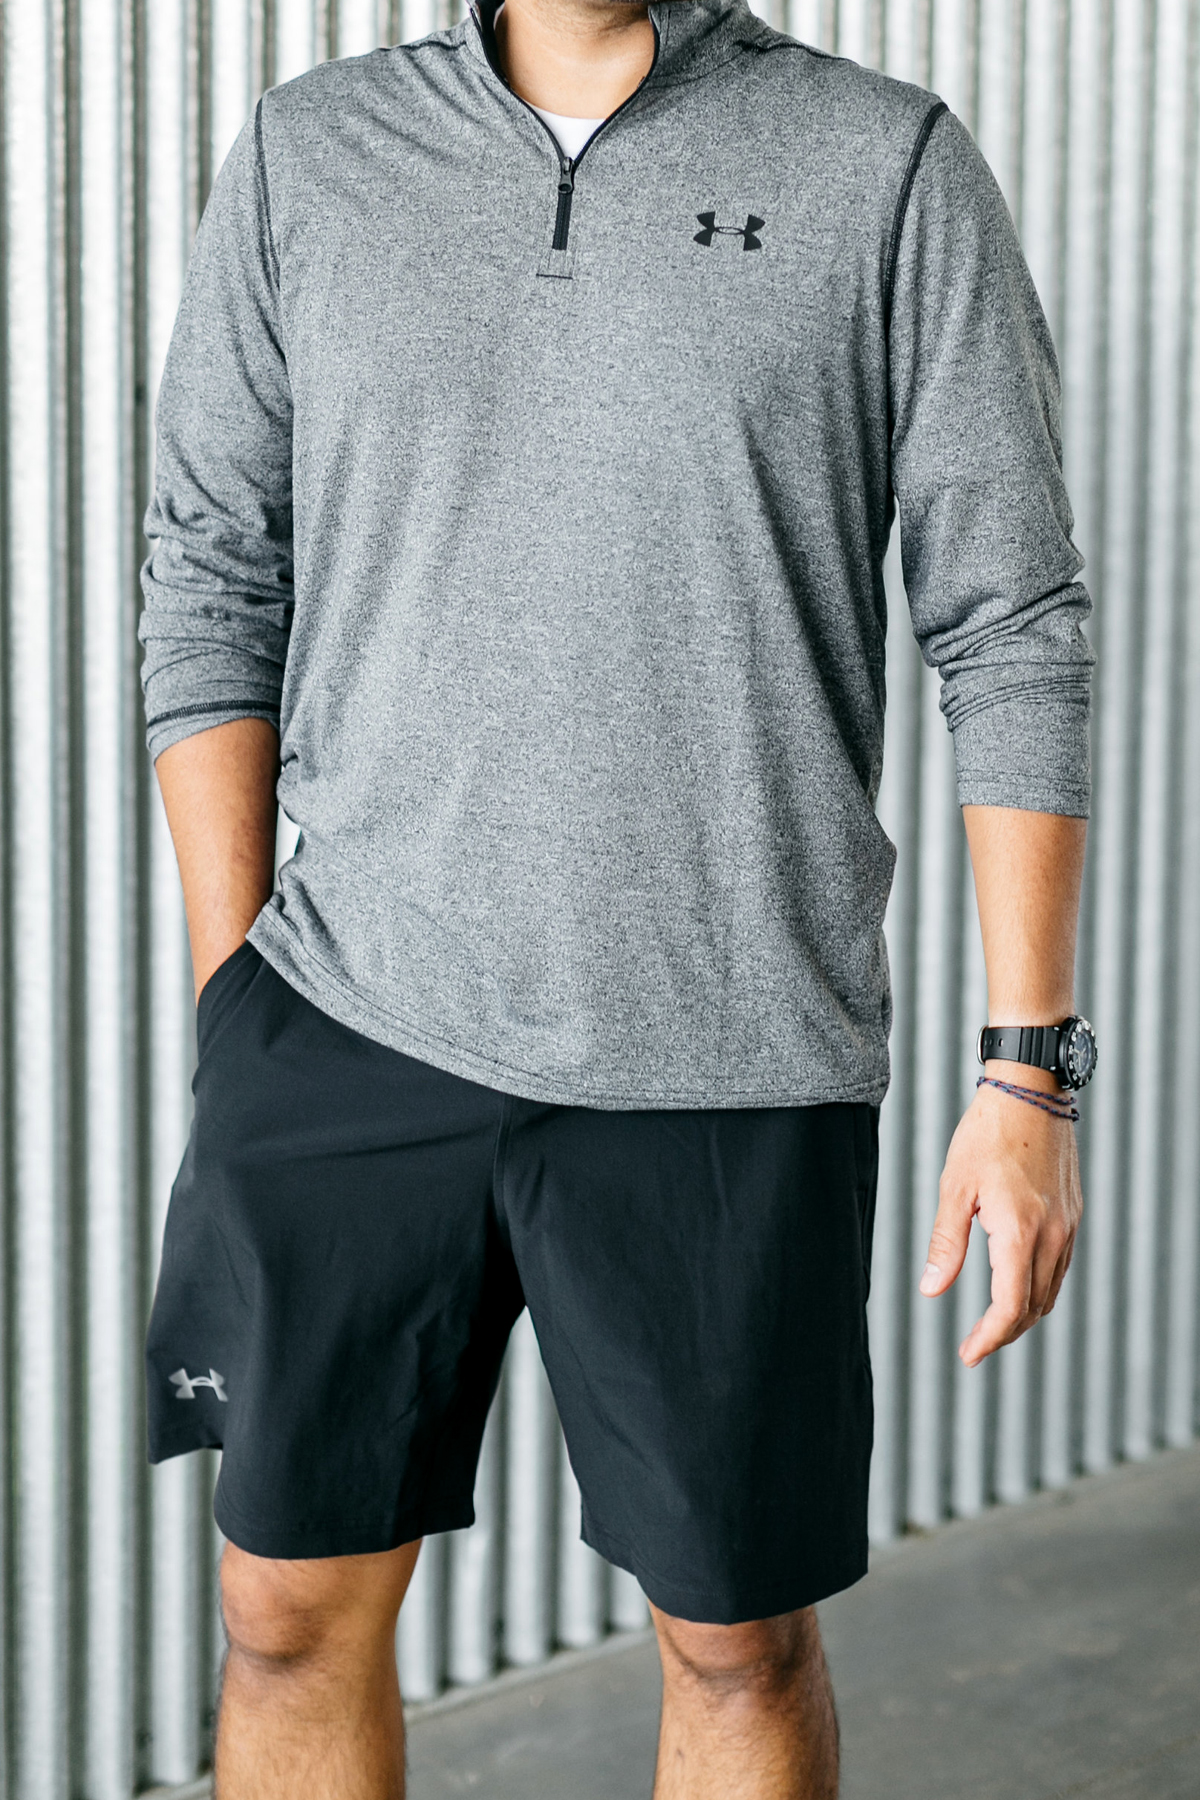 Nordstrom Men's Active, Under Armour, Nike